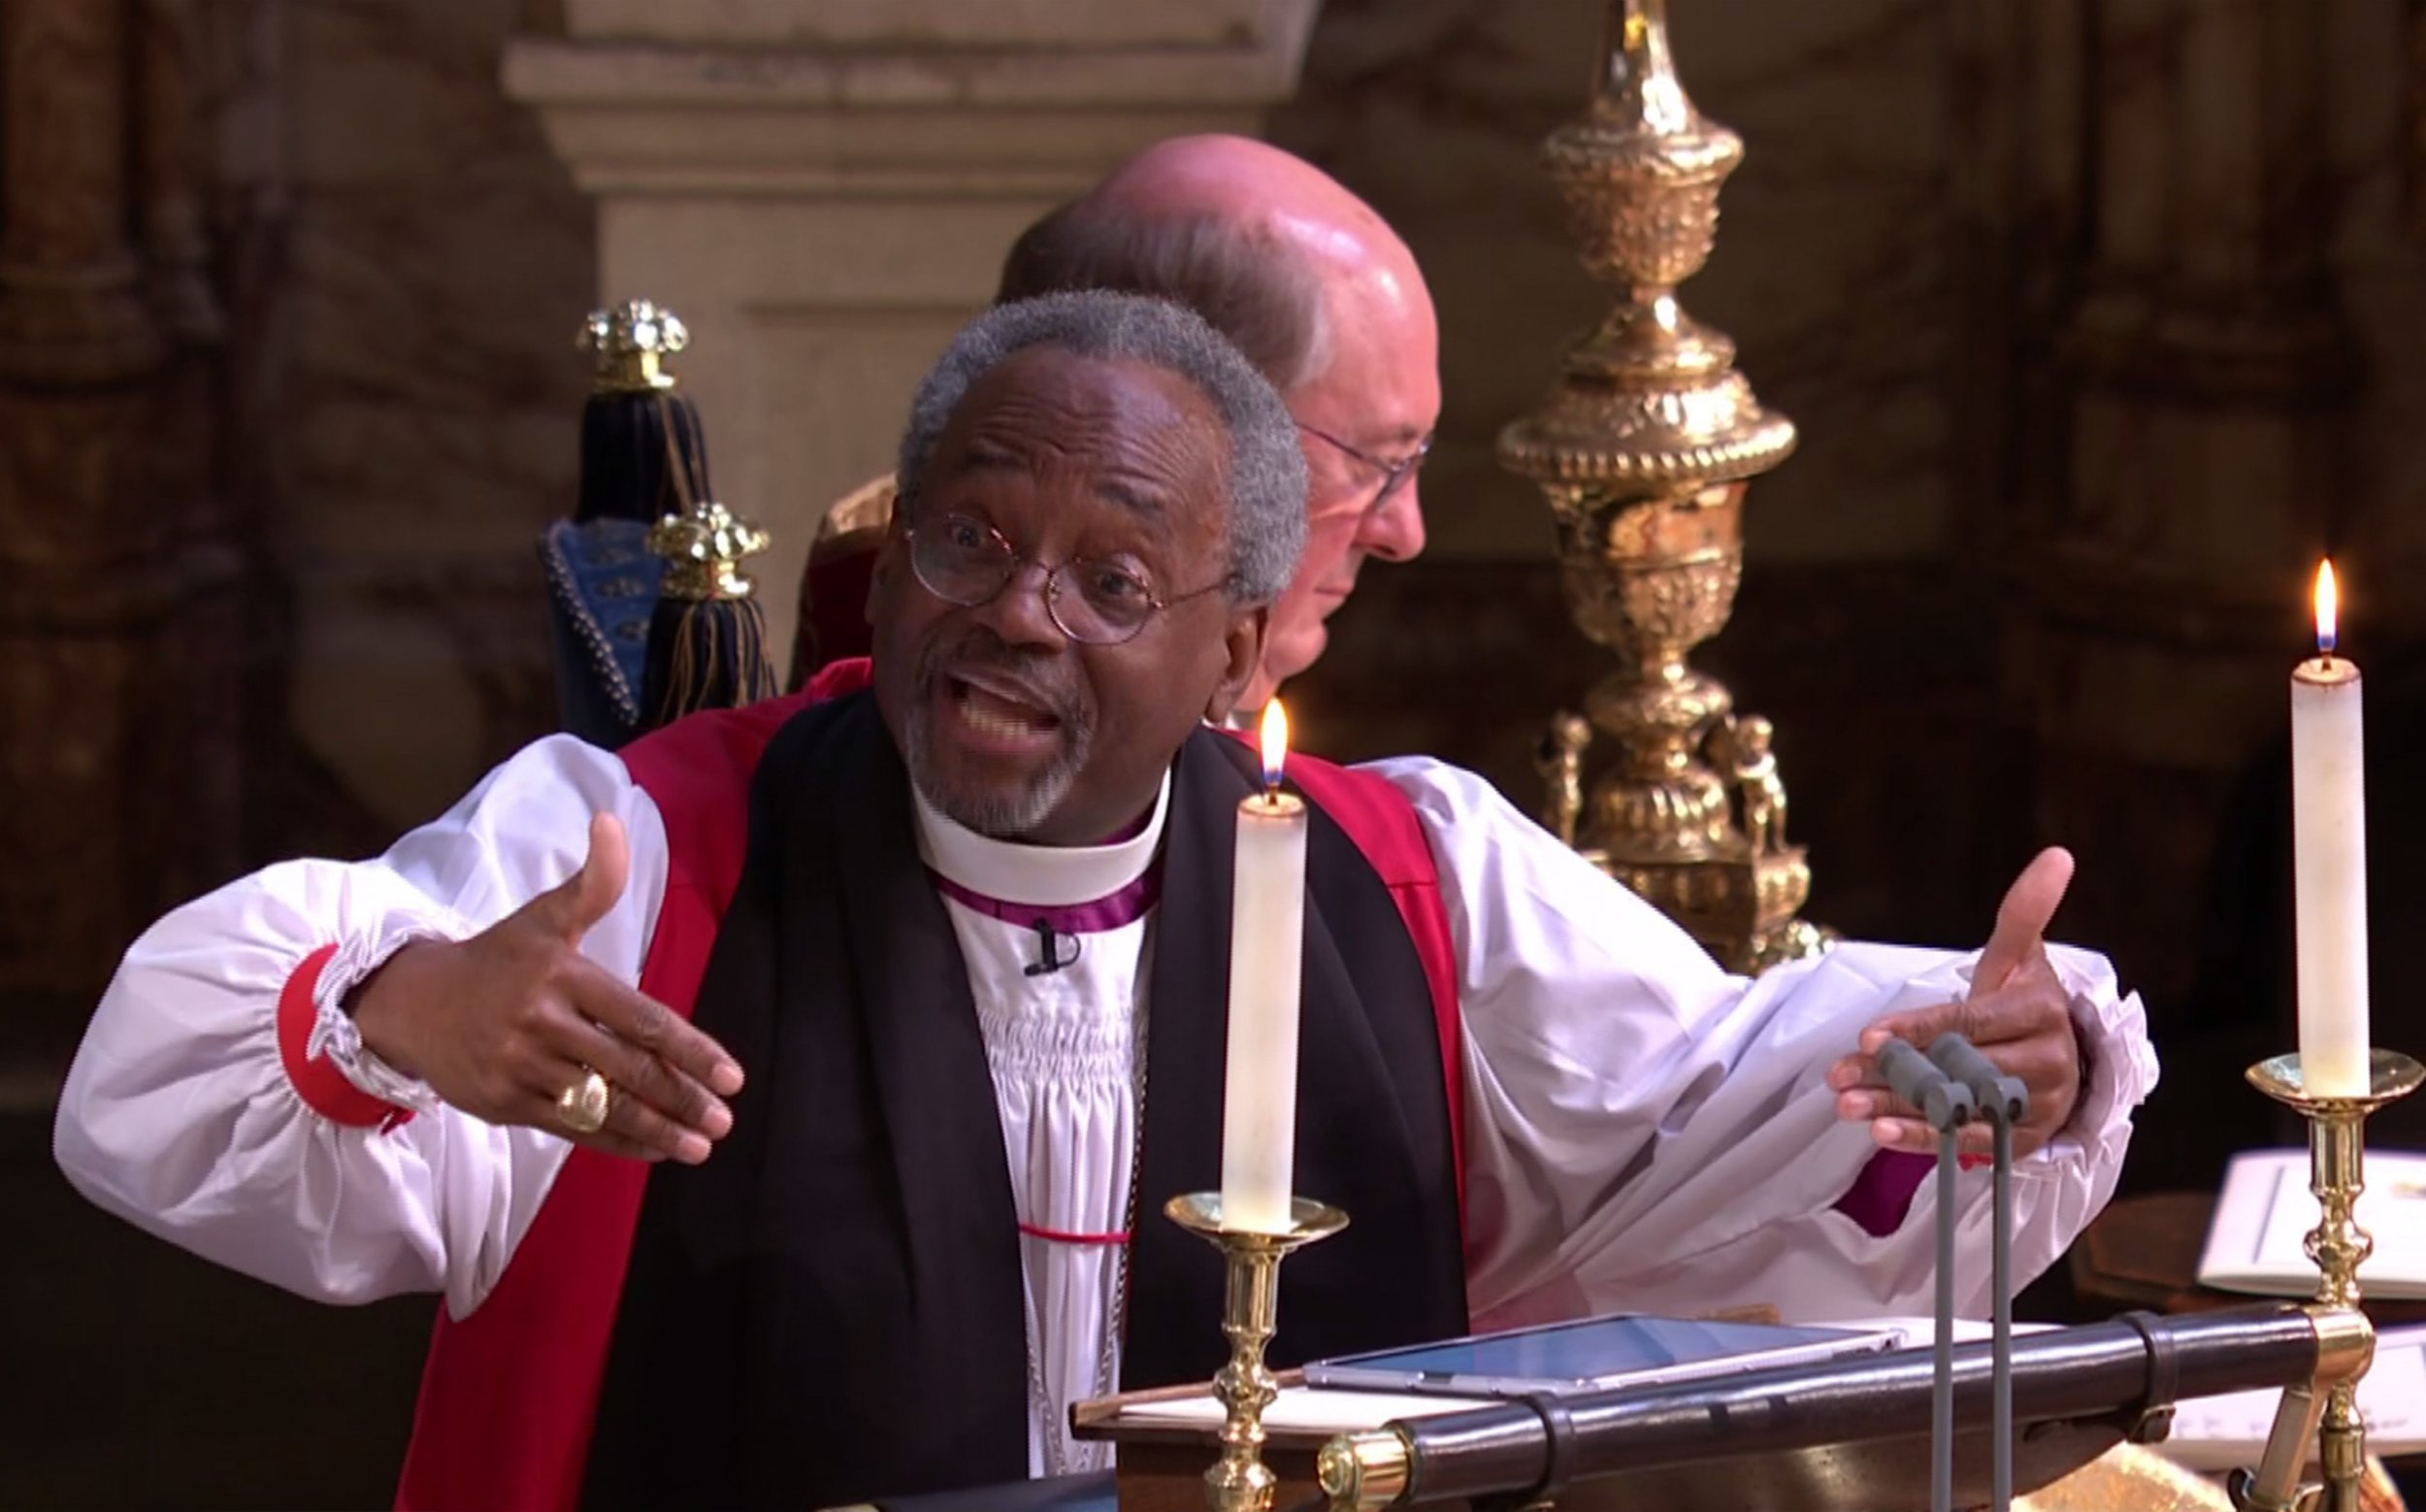 US Bishop Michael Curry address to St Georges' Chapel Windsor for 13 minutes 43 seconds. The wedding of Prince Harry and Meghan Markle.